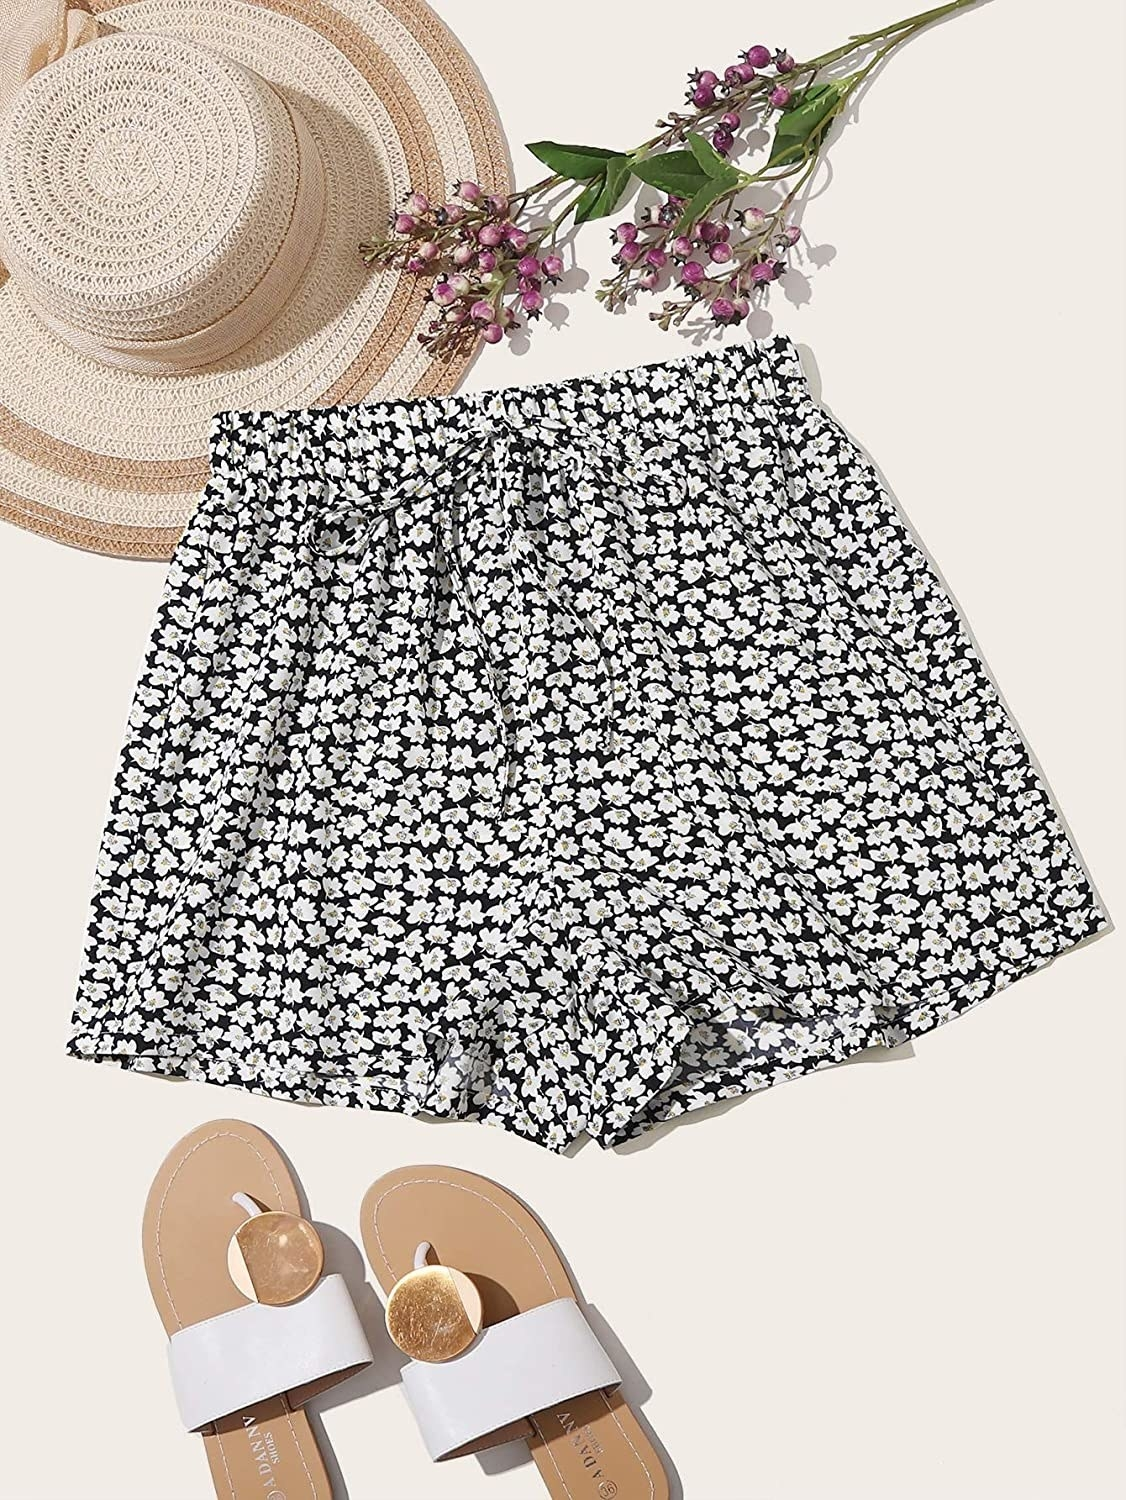 floral shorts next to a pair of sandals, a hat, and some flowers